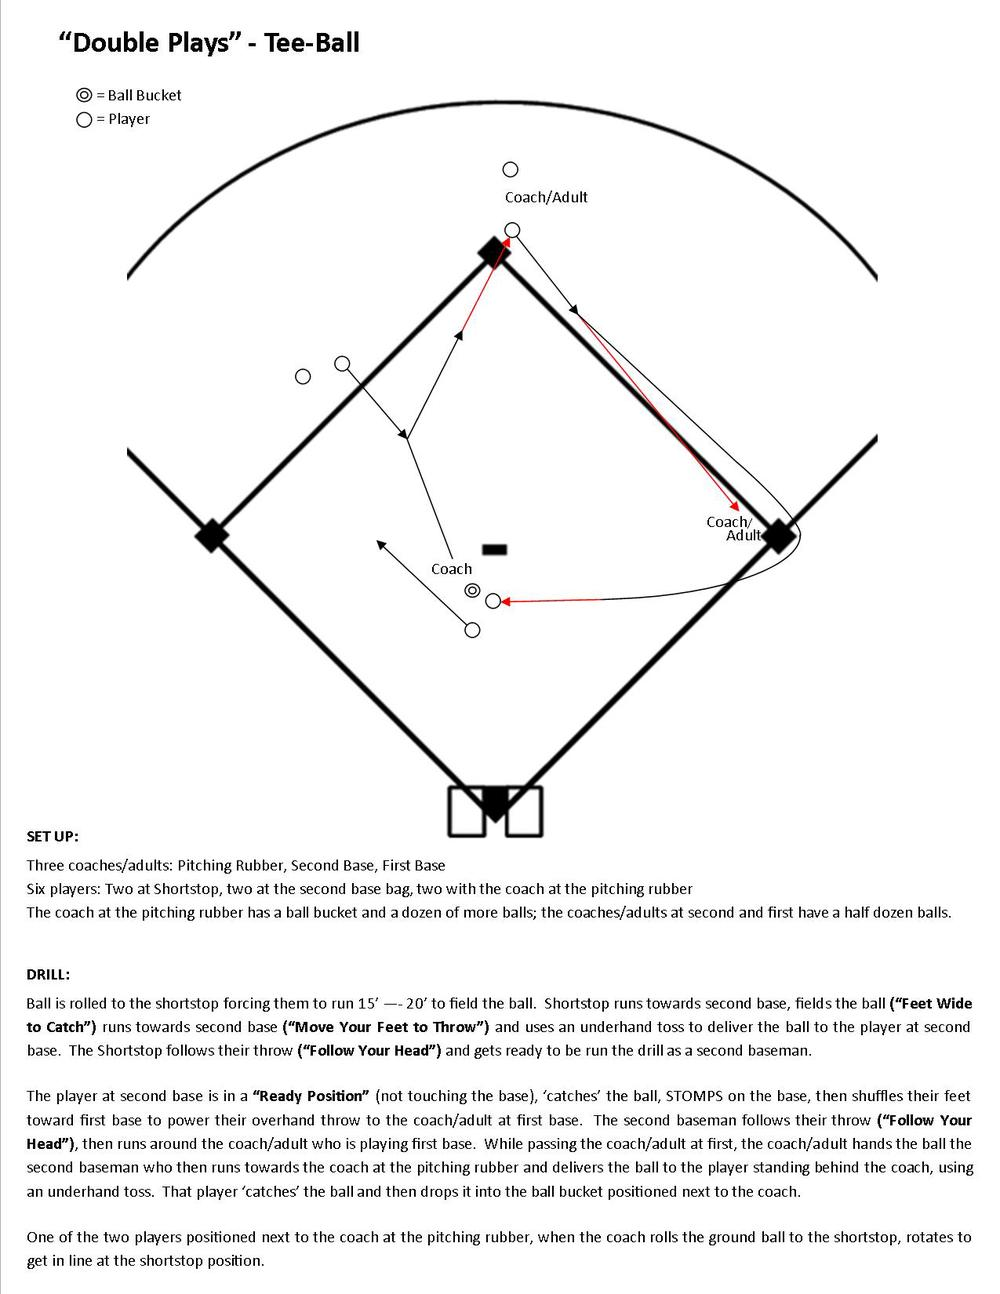 "Adapting to running the drill given the mistakes the kids will make and running the drill with less than six players:    1.  Kids usually want to 'line up' within a few inches of each other*.    Shortstop Position:  Place two cones at shortstop, one for the player who will be fielding the next ground ball and the other cone 5'-10' away for the next player.    Second Base Position:  we instruct the extra player to stand behind the assisting adult, while the player participating in the drill is positioned next to the base.  After the player participating in the drill moves away from the base, the coach/adult tells the next player to get into position next to the base.   Players positioned next to the coach at the pitching rubber:  just before the coach rolls the ground ball to the shortstop, the coach instructs one of the players standing next to them to rotate to the 'waiting cone' at shortstop.   2.  The kids will not catch many of the throws to second base - the coach/adult at second base always keeps a ball in hand.  When the player at second base misses a throw, the coach hands them a new ball in order to keep the drill going. ( RULE:  the players are not allowed to chase missed throws.)   3.  The kids throwing the ball from second base to first base, the first couple of days the drill is run, misunderstand that their throw is supposed to be overhand; they will run to first and make and underhand toss.  Simply continue to remind them that this LONG throw is overhand.  After running this drill at a couple of practices this will not be much of an issue.   4.  Some throws to the coach/adult at first base will not be accurate.  The coach/adult at first keeps a spare ball in hand at all times to be available to hand to the player as they run by.  It is also important for the coach/adult to recognize the throwing strength of the next player who will be throwing to them.  When a child who does not have as much throwing strength comes up, the coach/adult at first base moves closer to second base to a distance more in line with that particular child's throwing capability.  (This coach/adult will be moving a fair amount throughout the drill)   If fewer than six kids participating in the drill:   If  five  players: eliminate the extra player at second base.  If  four  players: eliminate the extra player next to the coach at the pitching rubber.  The single player there waits to 'catch' the underhand toss from the player running around the coach/adult at first base.  They drop the ball in the bucket, then runs to the 'waiting cone' at shortstop. (Note: if the tossed ball goes far past them we remind them of the RULE: 'players are not allowed to chase missed throw' and instruct them to let the ball go and rotate to the 'waiting cone' at shortstop.     * The natural survival instinct in a child drives them to stick as close as possible to the kids ahead of them in line in order to reduce the possibility of someone else getting in line ahead of them (to be the next to get food, protection, etc.)  In modern society this should not be a concern, but until kids mature their basic survival instincts dominate their behavior.  Given an understanding of this and other reasons behind young children's behavior makes it easier for the coaches/adults working with them to not allow these behaviors cause frustration.  They can then lead the kids with greater empathy and reduce their urge to fight behaviors that are difficult to change and/or use strategies to overcome these behaviors.             Normal   0           false   false   false     EN-US   X-NONE   X-NONE                                                                                                                                                                                                                                                                                                                                                                           /* Style Definitions */  table.MsoNormalTable 	{mso-style-name:""Table Normal""; 	mso-tstyle-rowband-size:0; 	mso-tstyle-colband-size:0; 	mso-style-noshow:yes; 	mso-style-priority:99; 	mso-style-parent:""""; 	mso-padding-alt:0in 5.4pt 0in 5.4pt; 	mso-para-margin-top:0in; 	mso-para-margin-right:0in; 	mso-para-margin-bottom:10.0pt; 	mso-para-margin-left:0in; 	line-height:115%; 	mso-pagination:widow-orphan; 	font-size:11.0pt; 	font-family:""Calibri"",""sans-serif""; 	mso-ascii-font-family:Calibri; 	mso-ascii-theme-font:minor-latin; 	mso-hansi-font-family:Calibri; 	mso-hansi-theme-font:minor-latin;}"